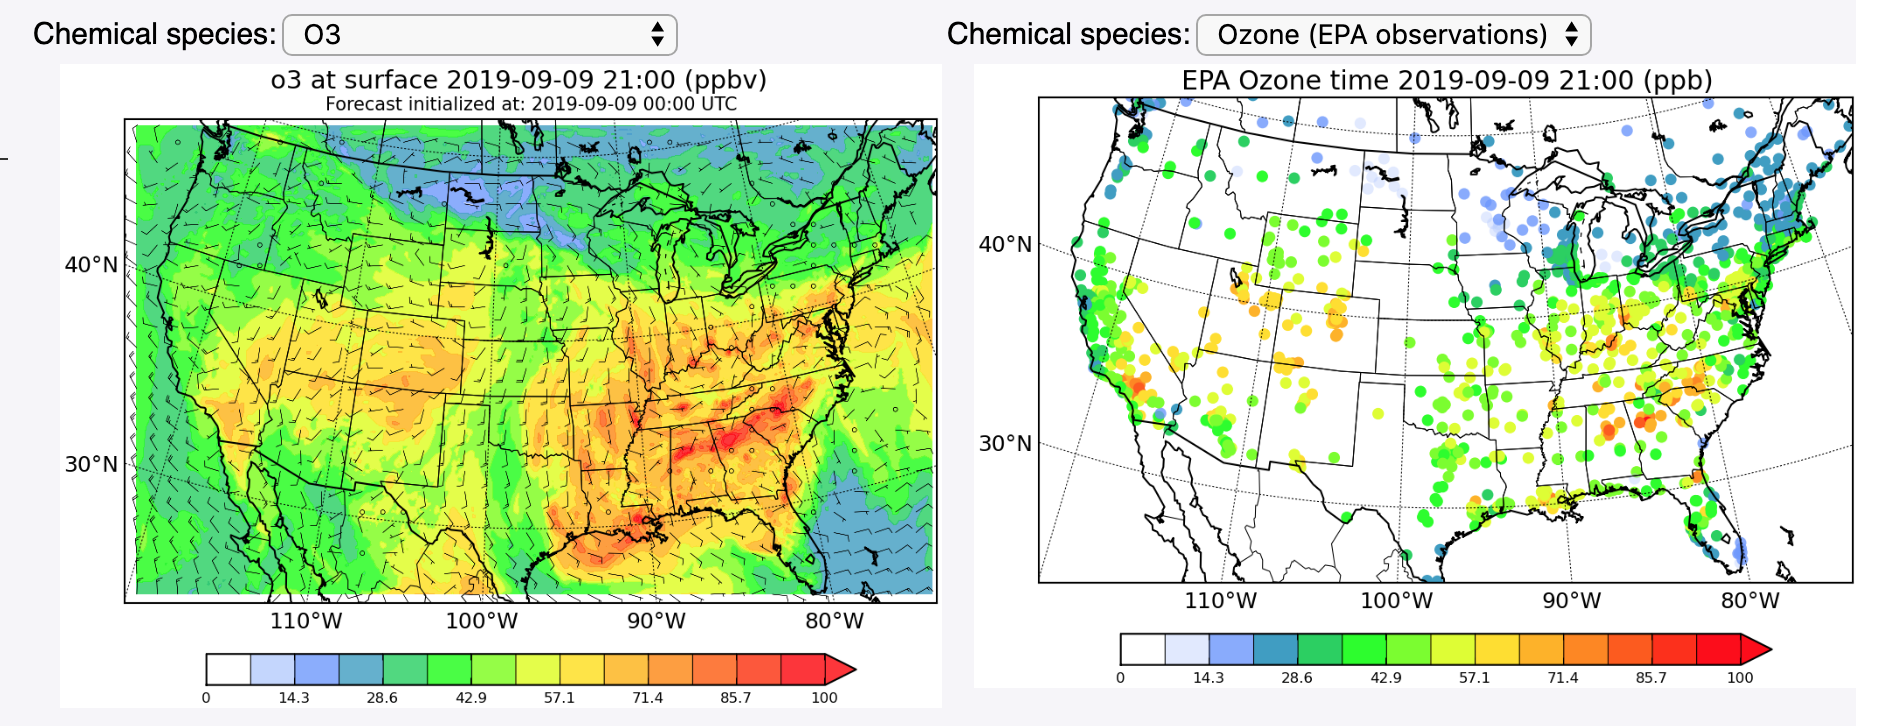 Air quality maps showing forecasts and observations of ground-level ozone levels across the US